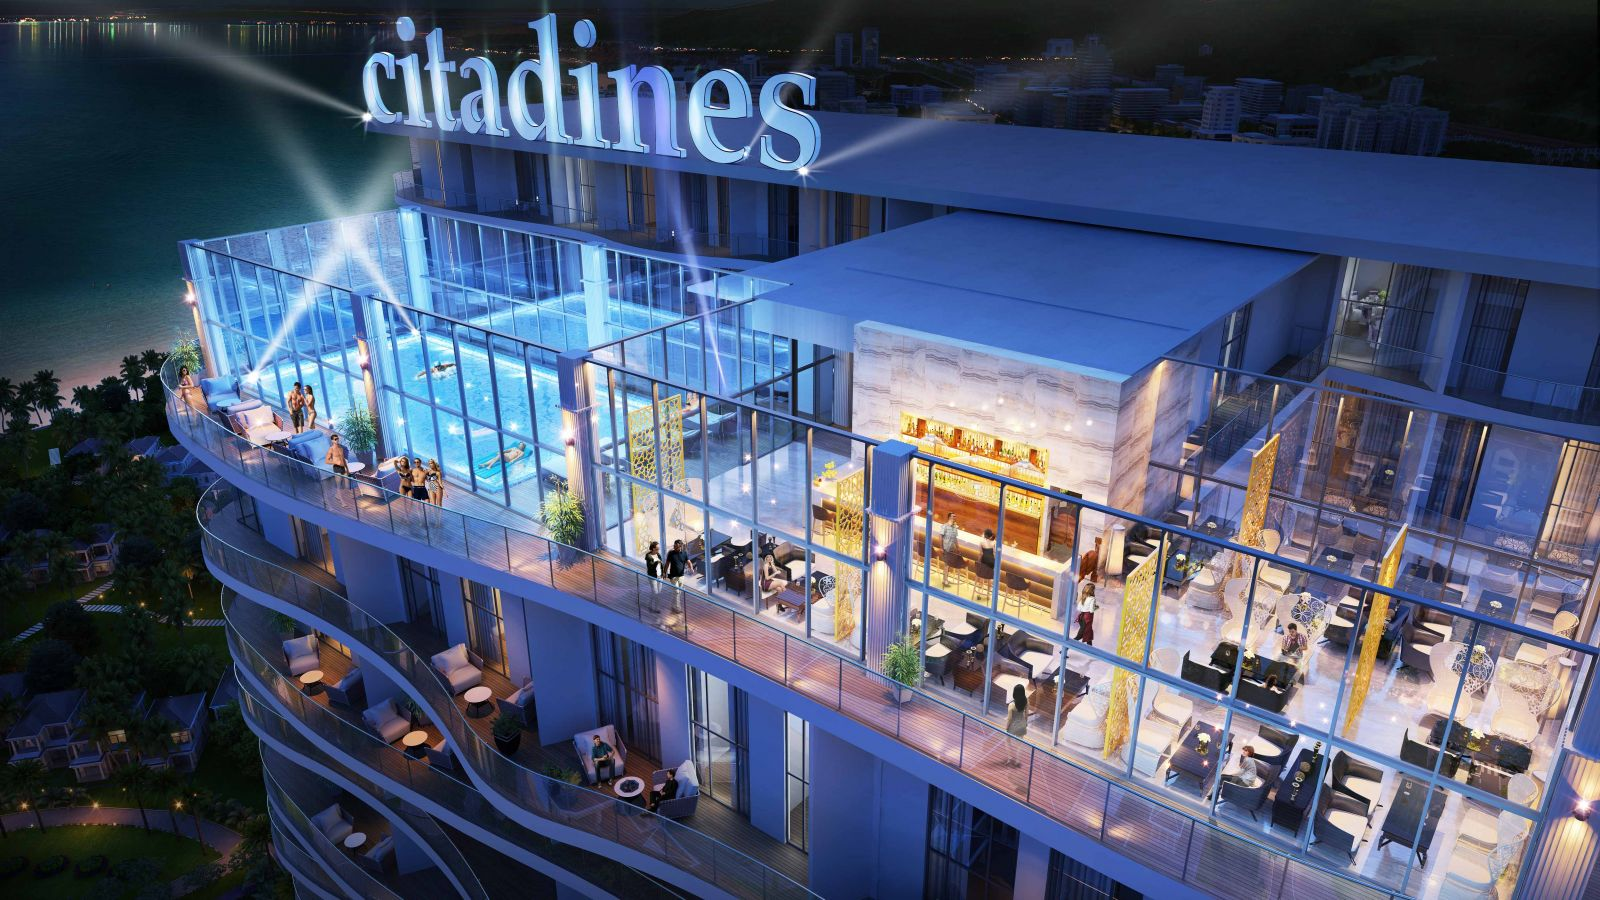 skybar citadines hạ long